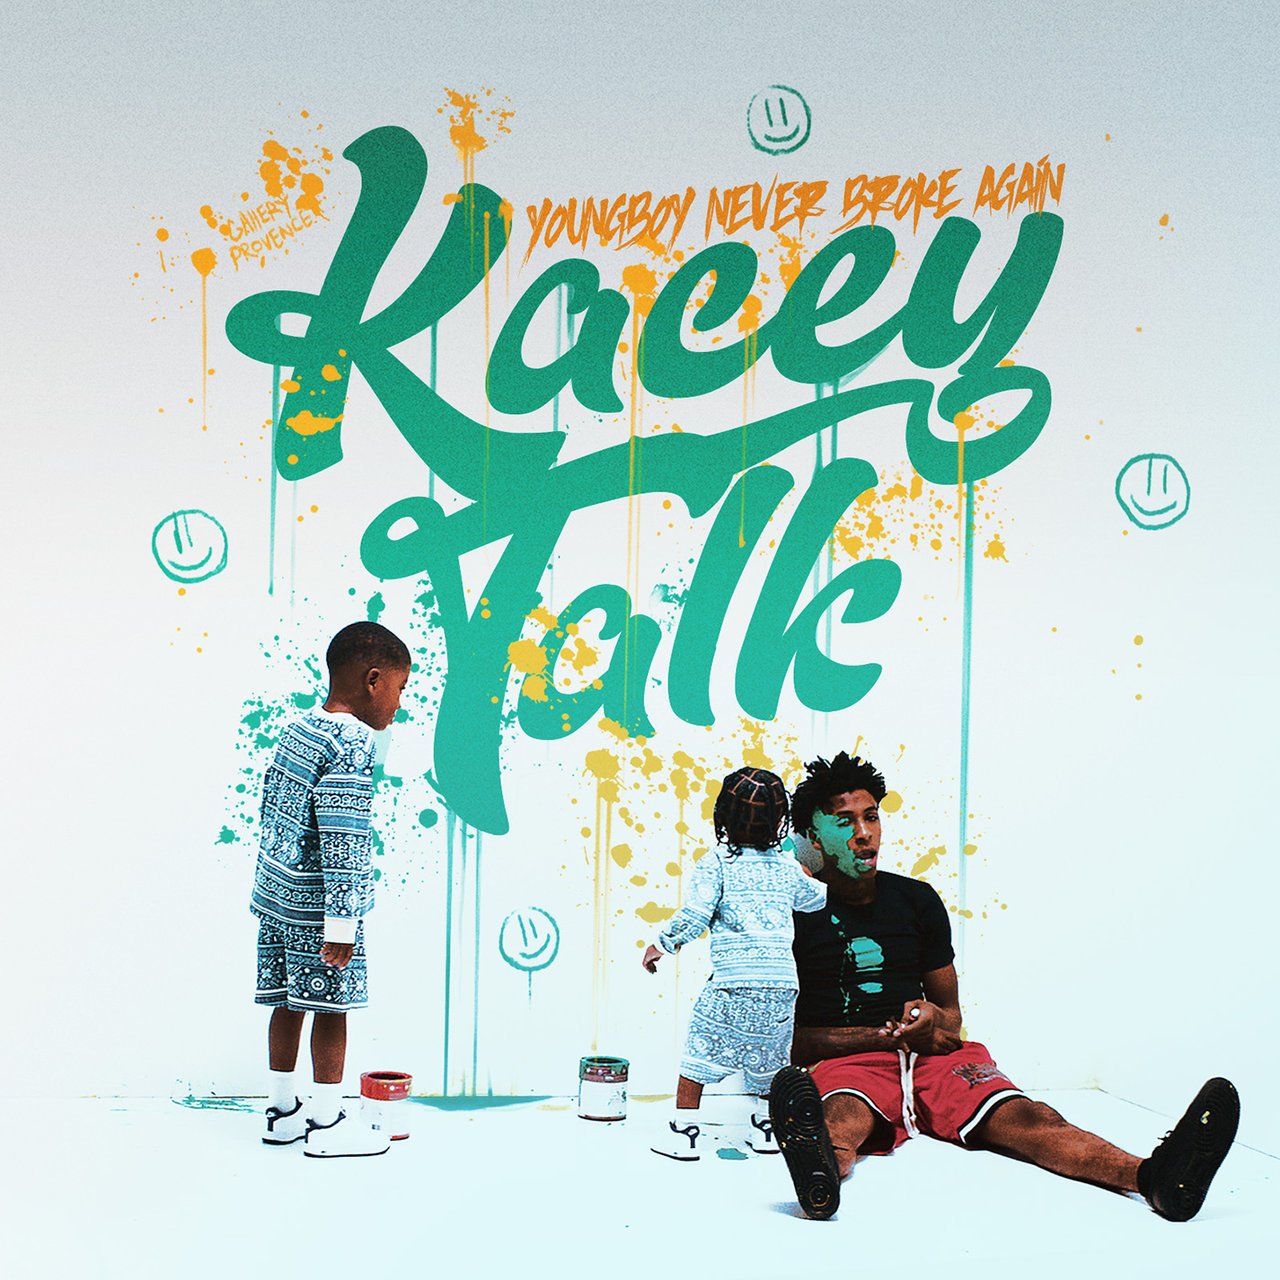 YoungBoy Never Broke Again - Kacey Talk (Cover)